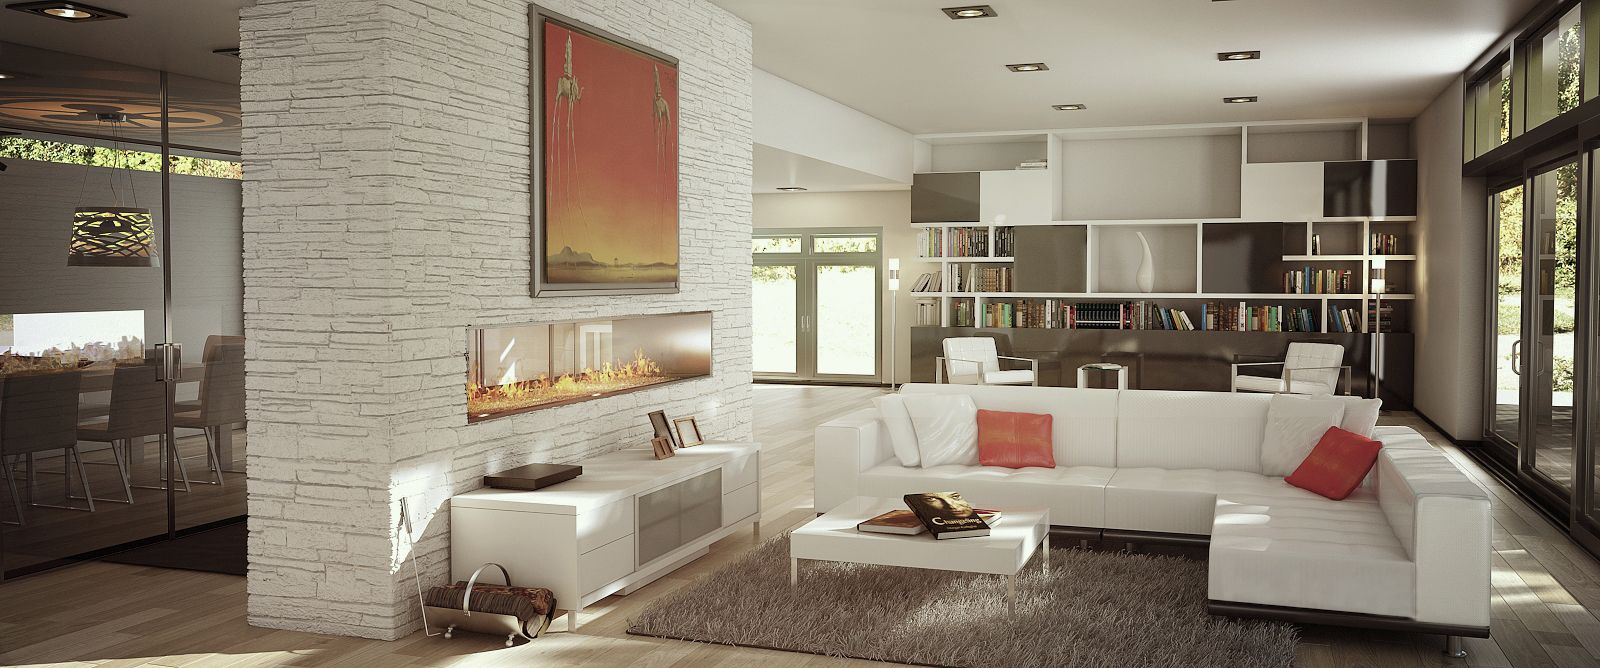 Amazing Modern Modani Home Featuring Out Gavin Coffee Table, Phantom Sofa, Lucide  Floor Lamp And Images